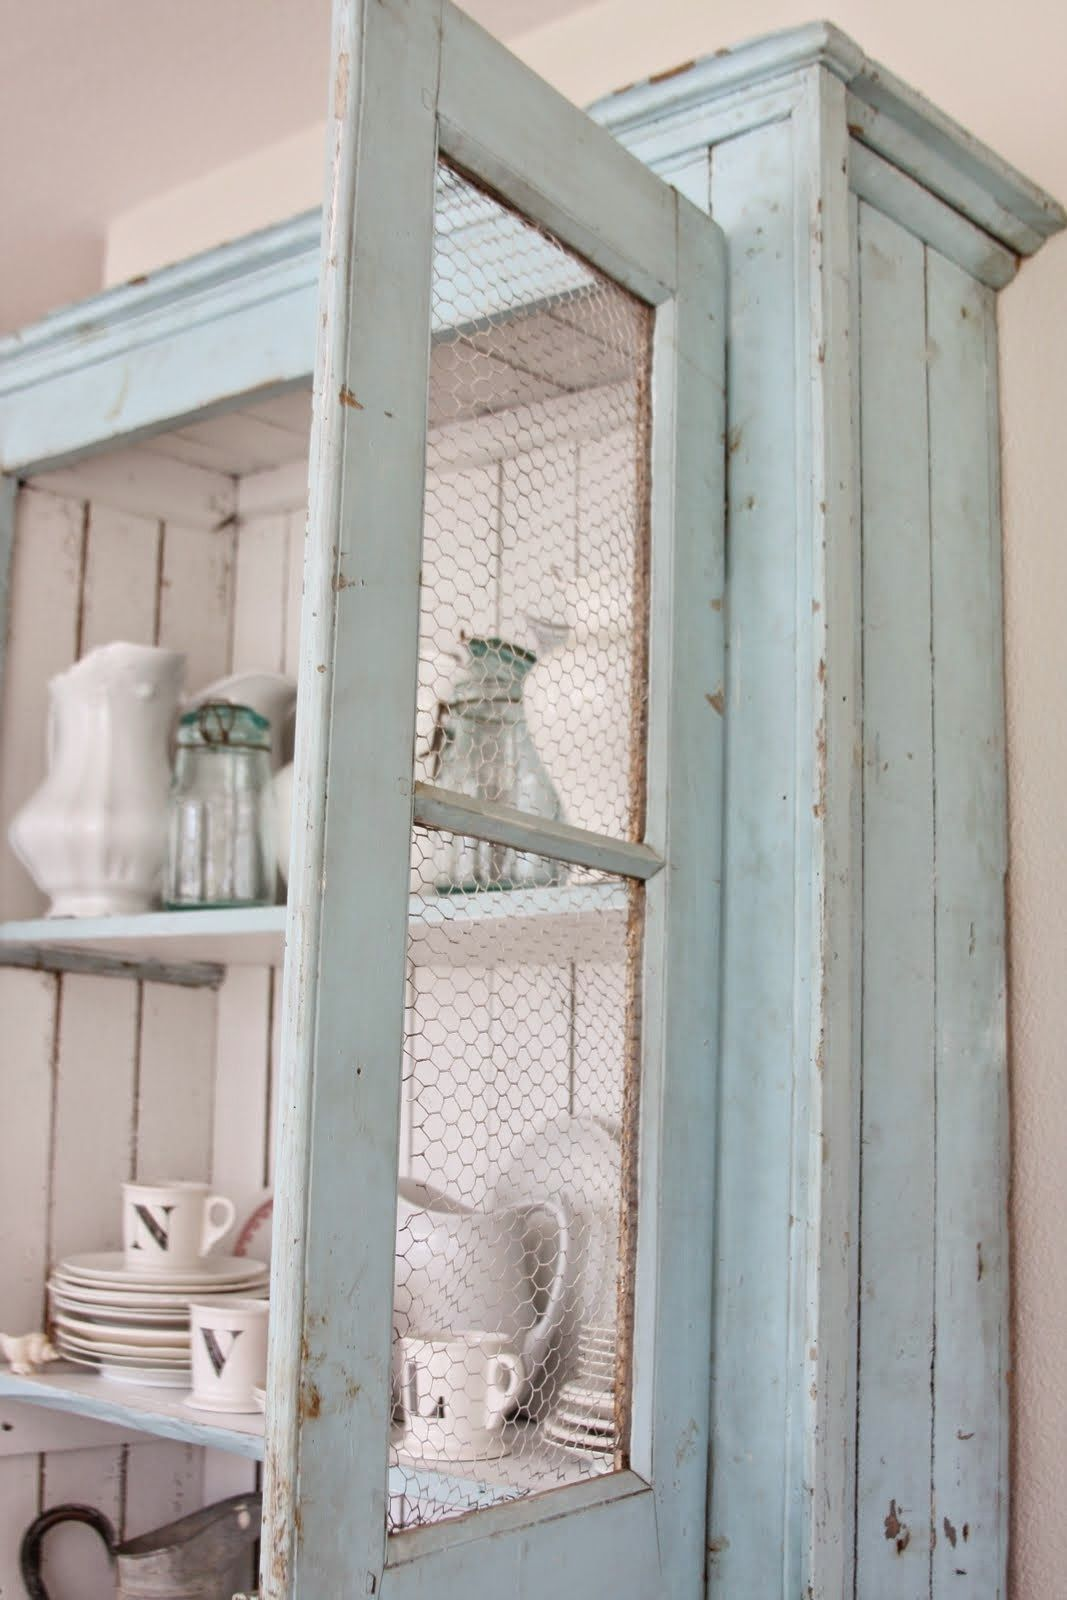 8 Chic Farmhouse Décor Ideas to Copy | Pinterest | Chicken wire ...